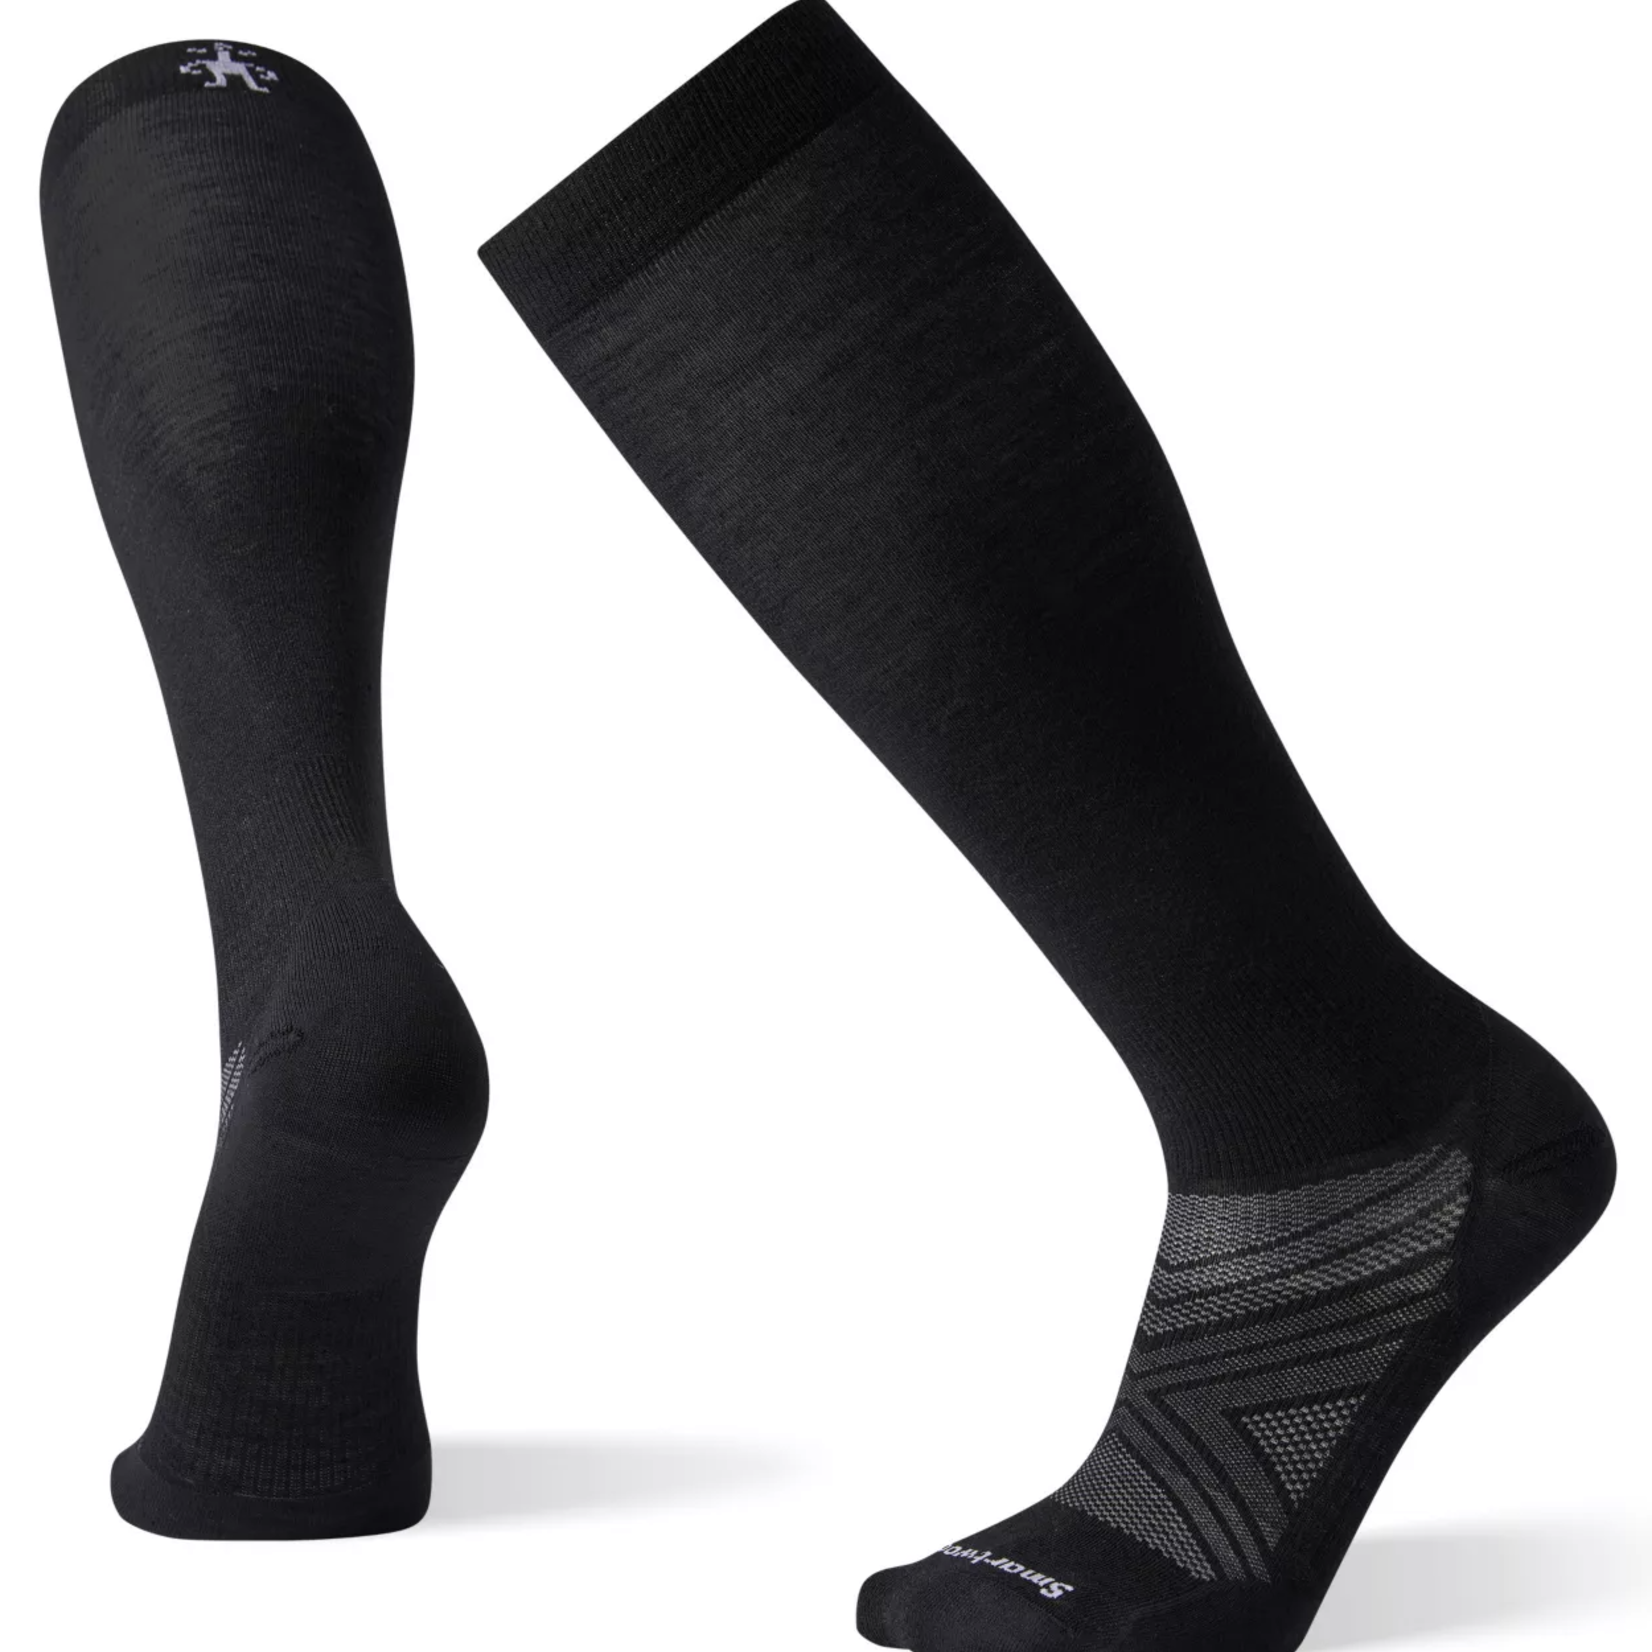 Smartwool Smartwool PHD over the calf Unsex